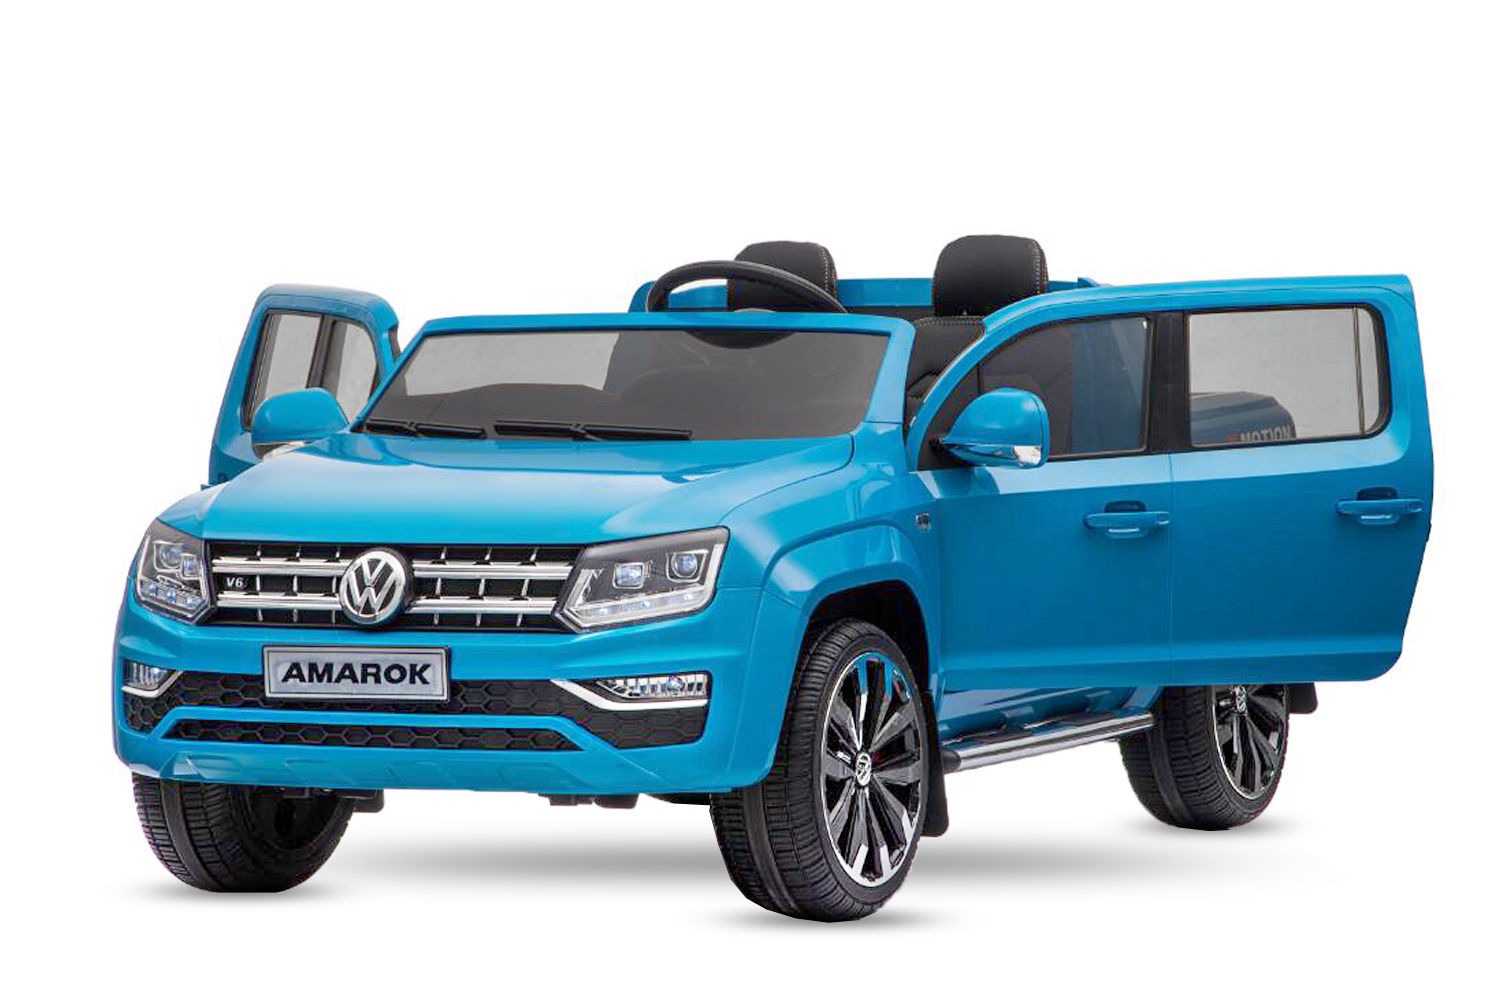 kidcars kinder elektroautos mit akku lizenz vw amarok. Black Bedroom Furniture Sets. Home Design Ideas